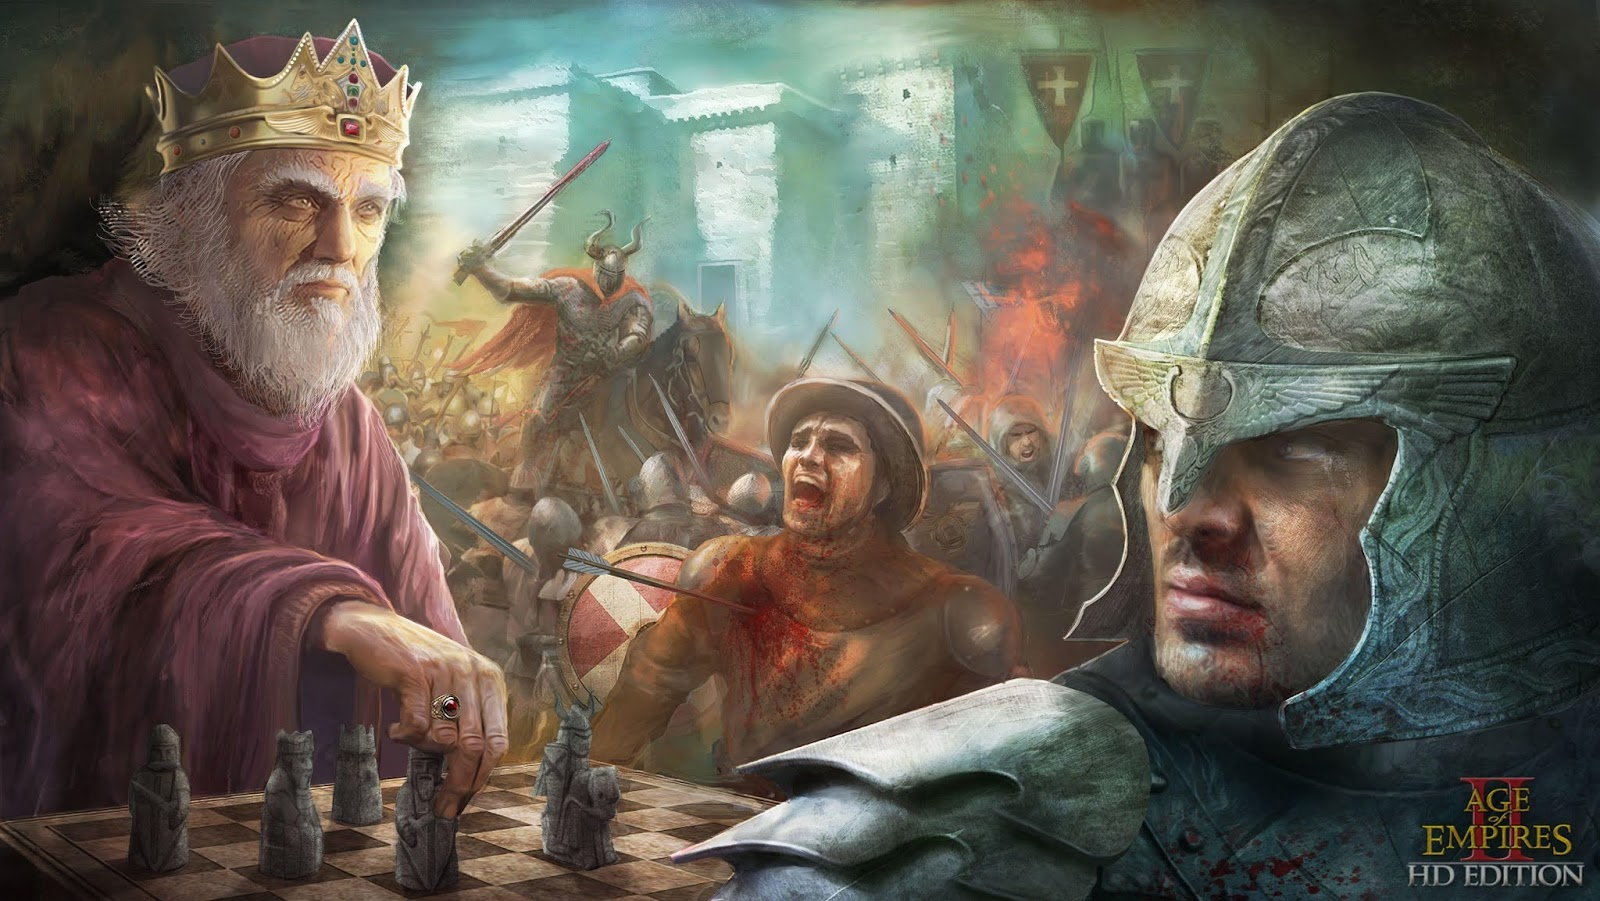 Age of Empires II HD image